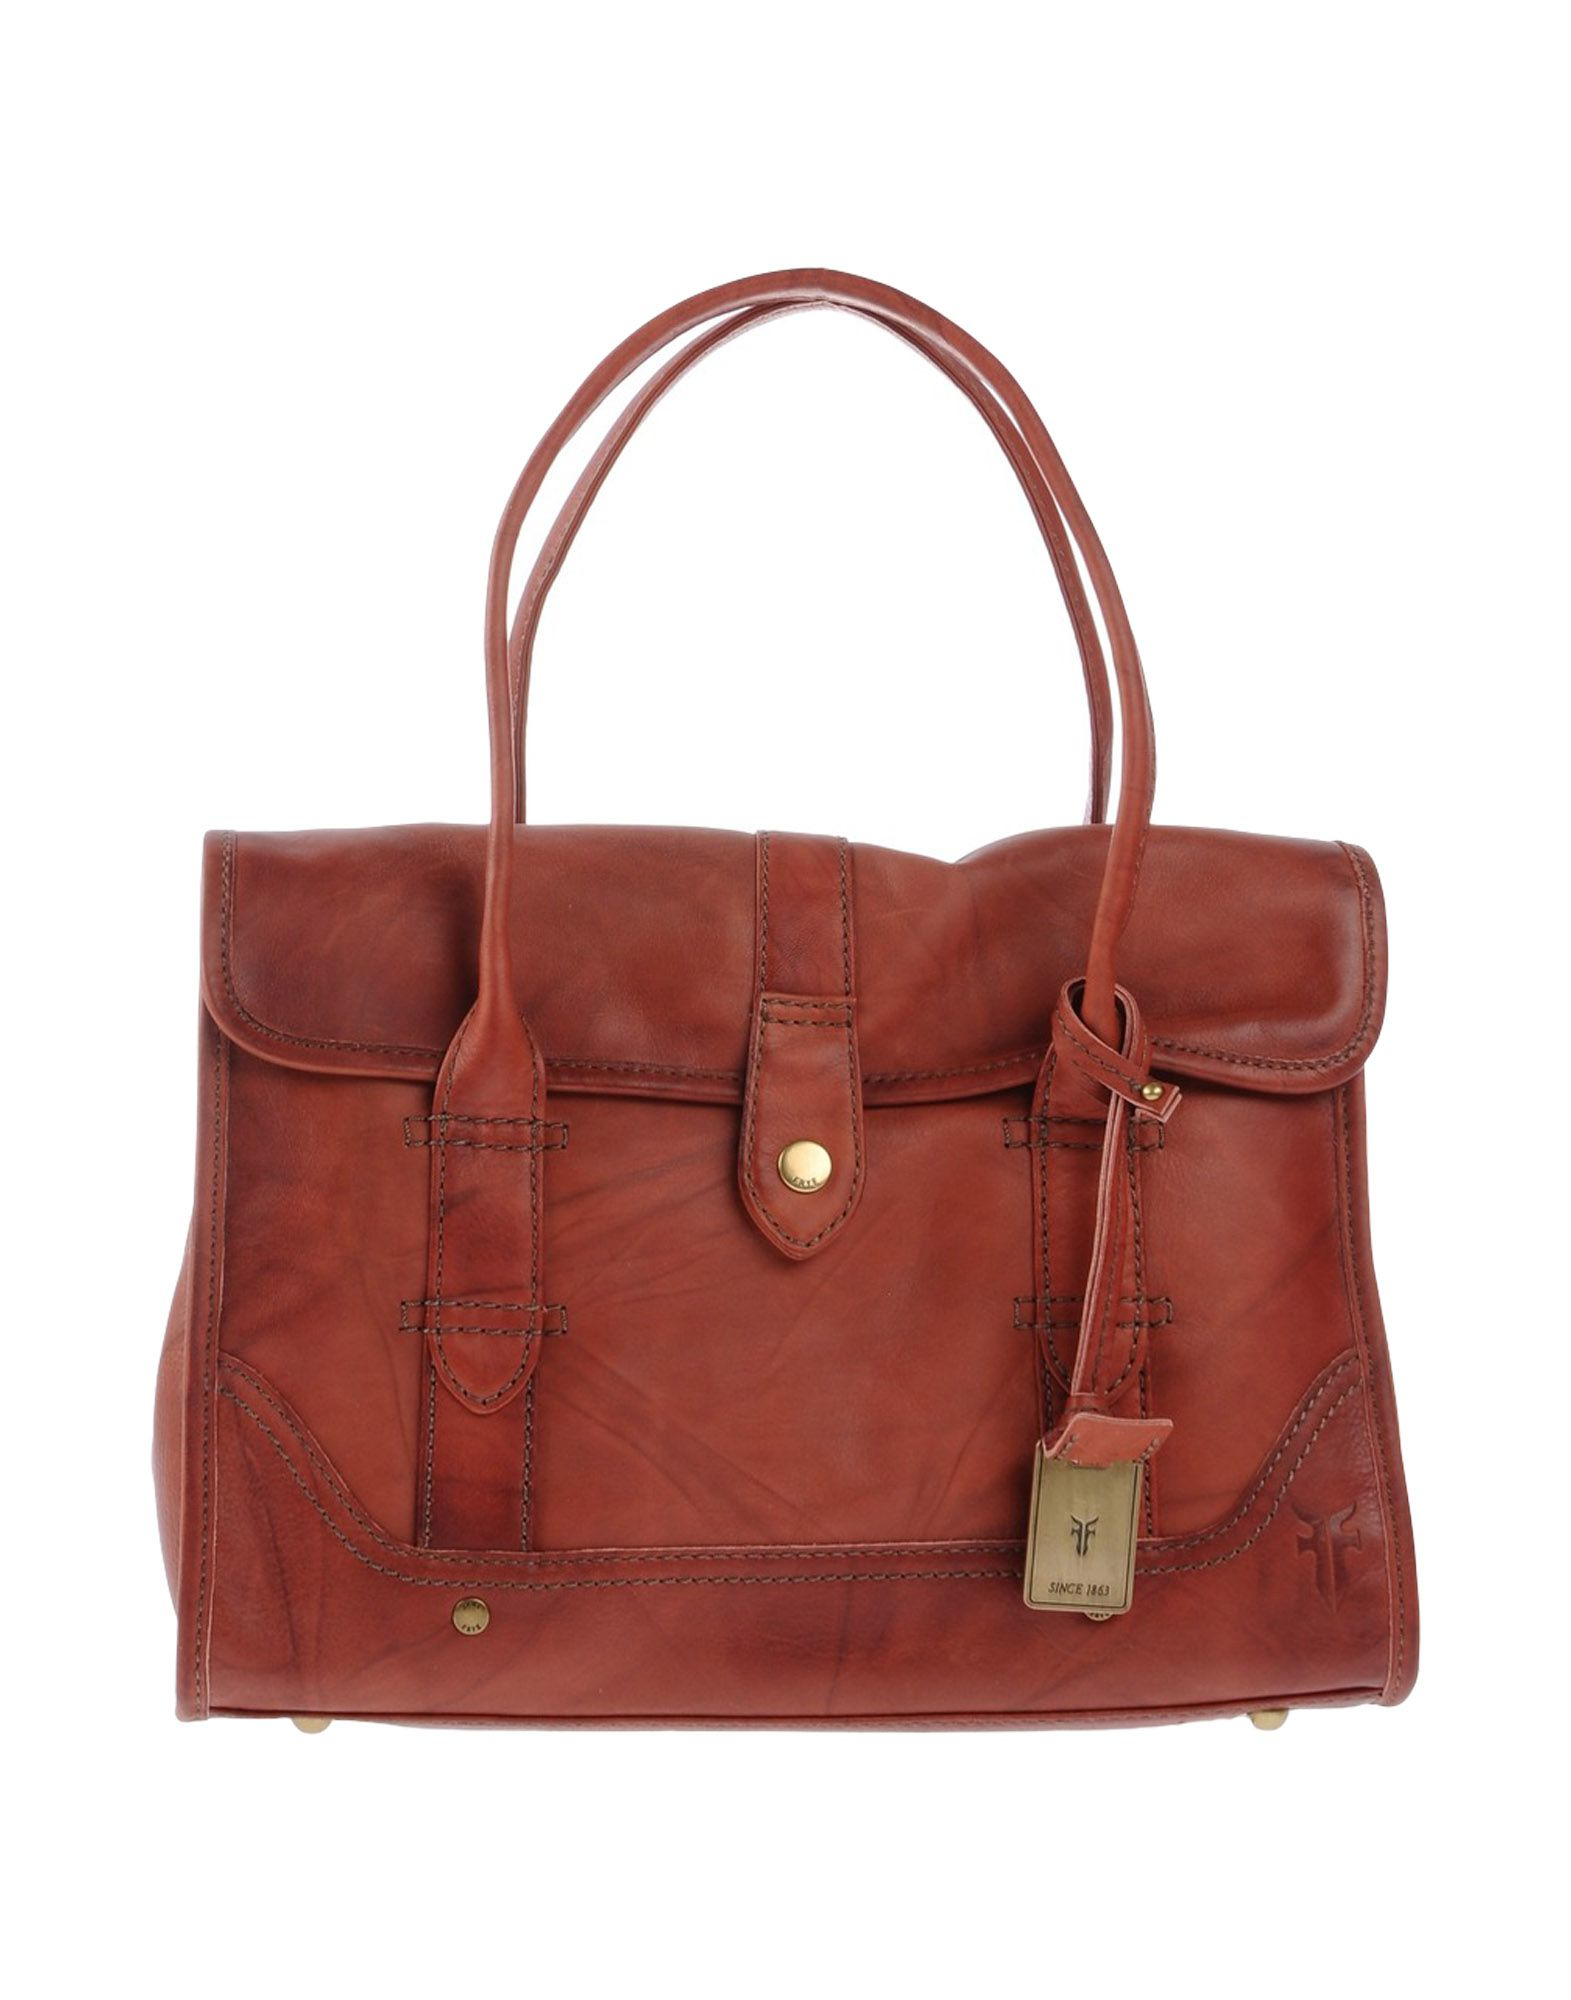 b0bea8cac Bally Handbag picture: furla grey handbag gray produc (lyst.com) Bally  Handbag picture: fossil brown leather crossbody (cdna.lystit.com)